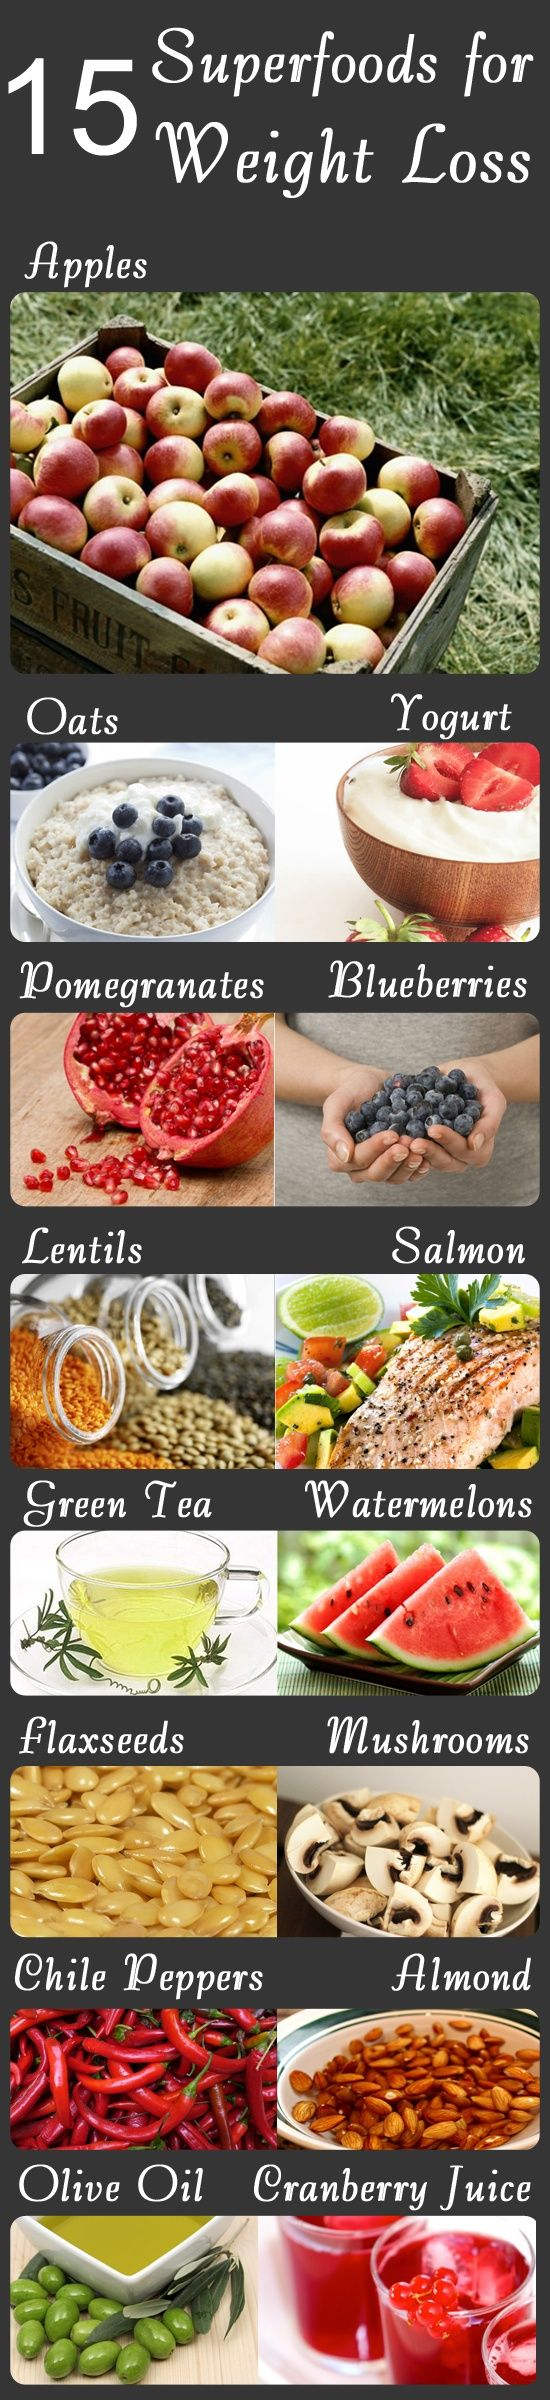 Weight Loss Foods: Let us look at 15 such super foods that we can easily incorporate into our daily diet.